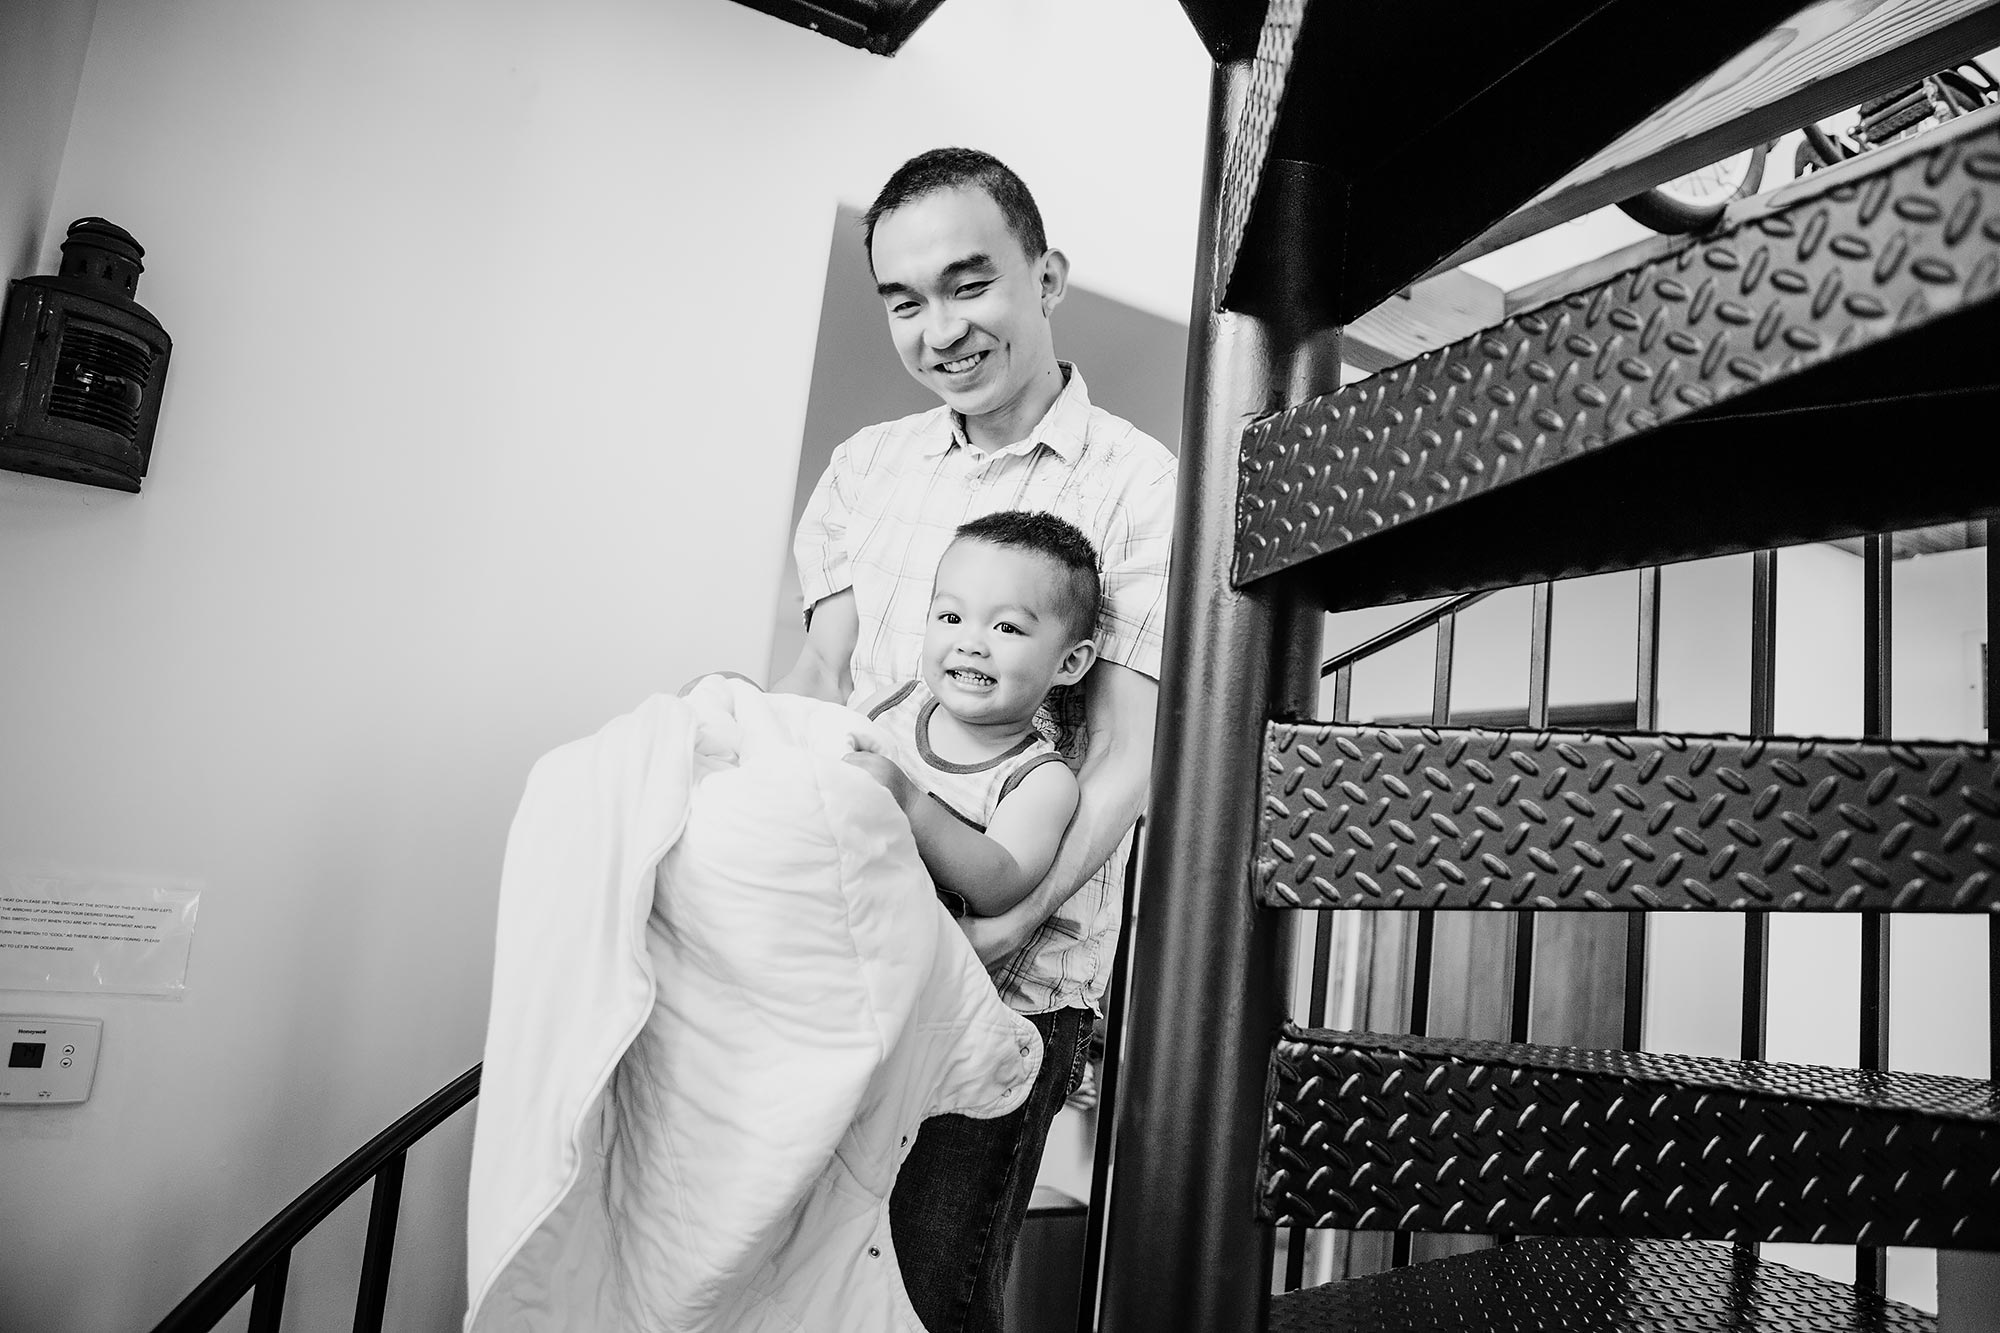 Boston Family Portrait Photographer | Stephen Grant Photography